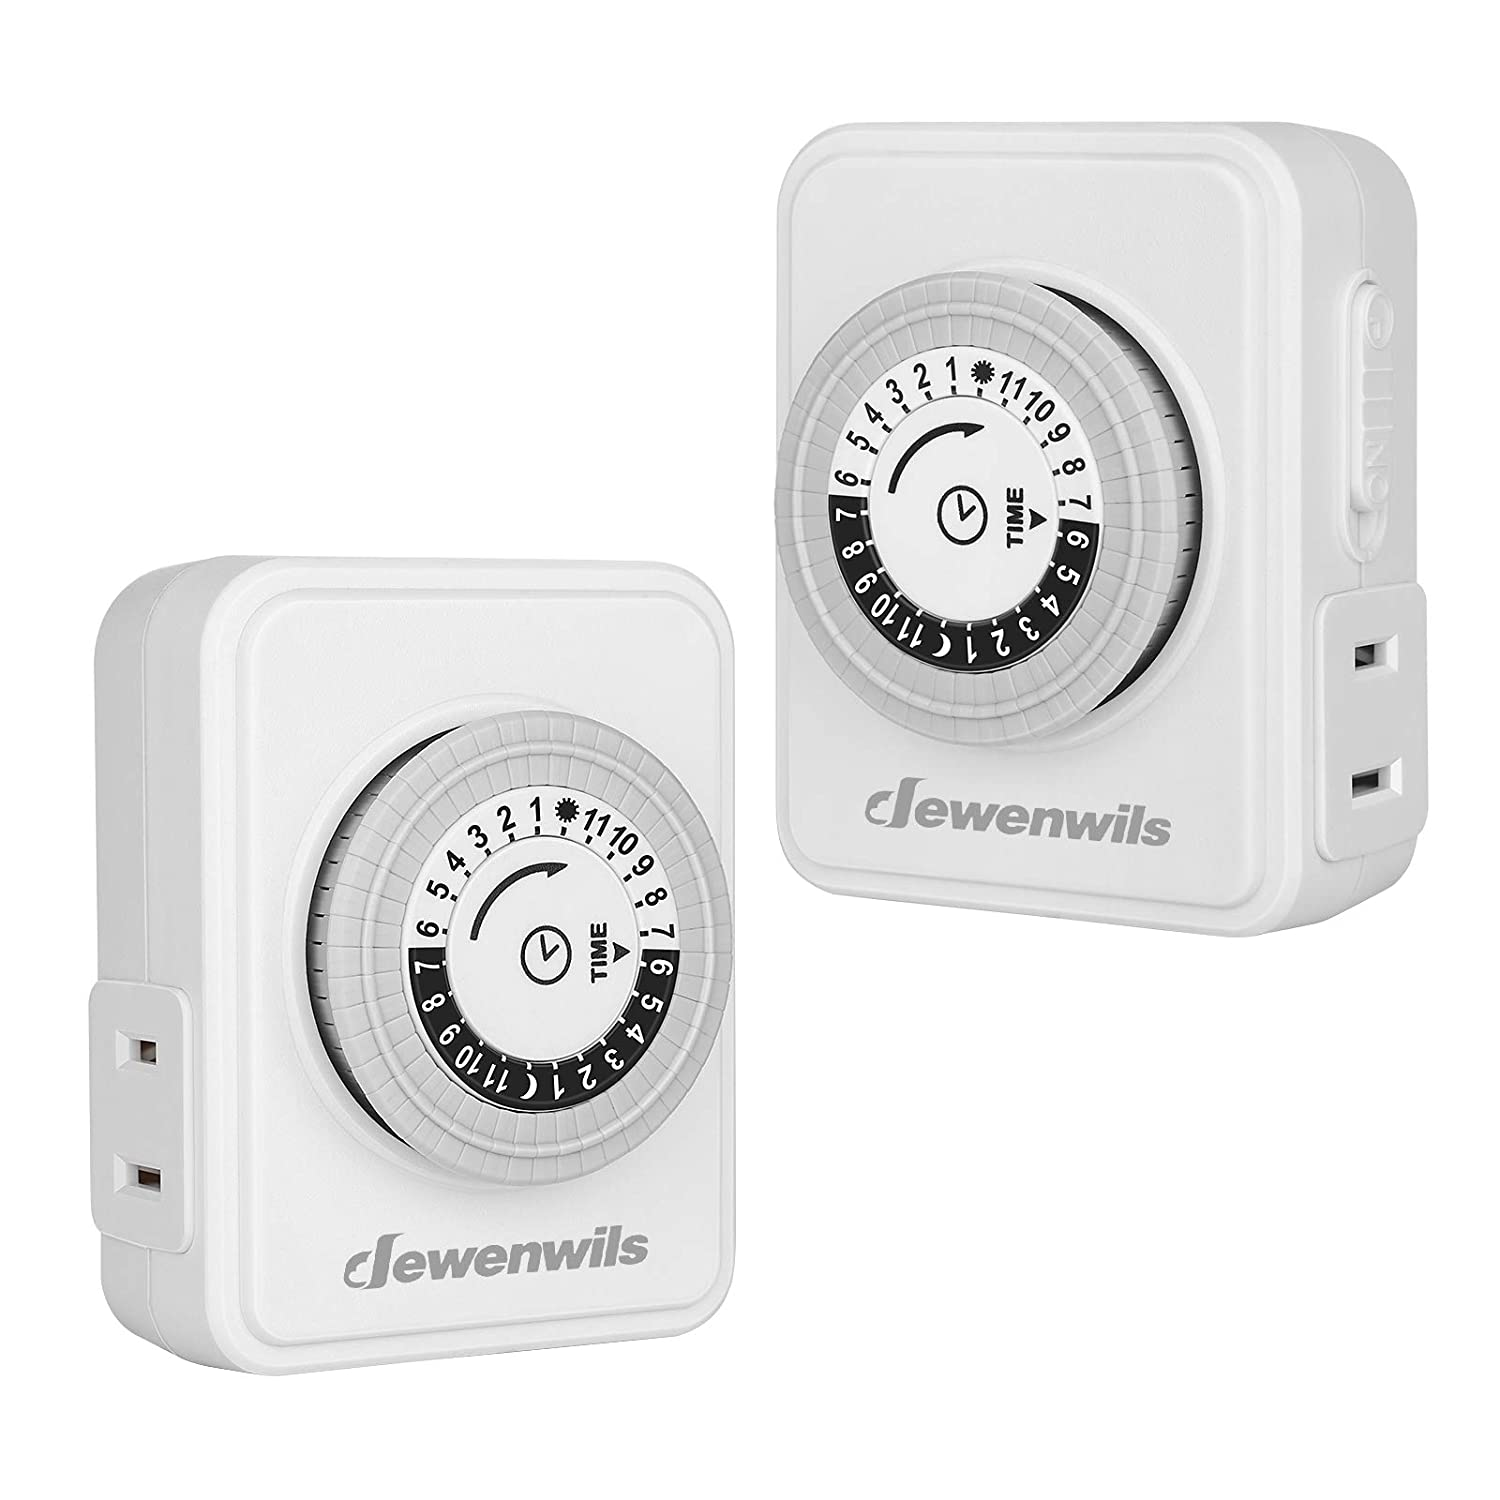 DEWENWILS Indoor Plug in Timer with 2 Polarized Outlets, 24 Hour Mechanical Timer, 30-Minute Intervals, Perfect for Lamps, Holiday Decor, Small Home Appliances, ETL Listed, 2 Pack